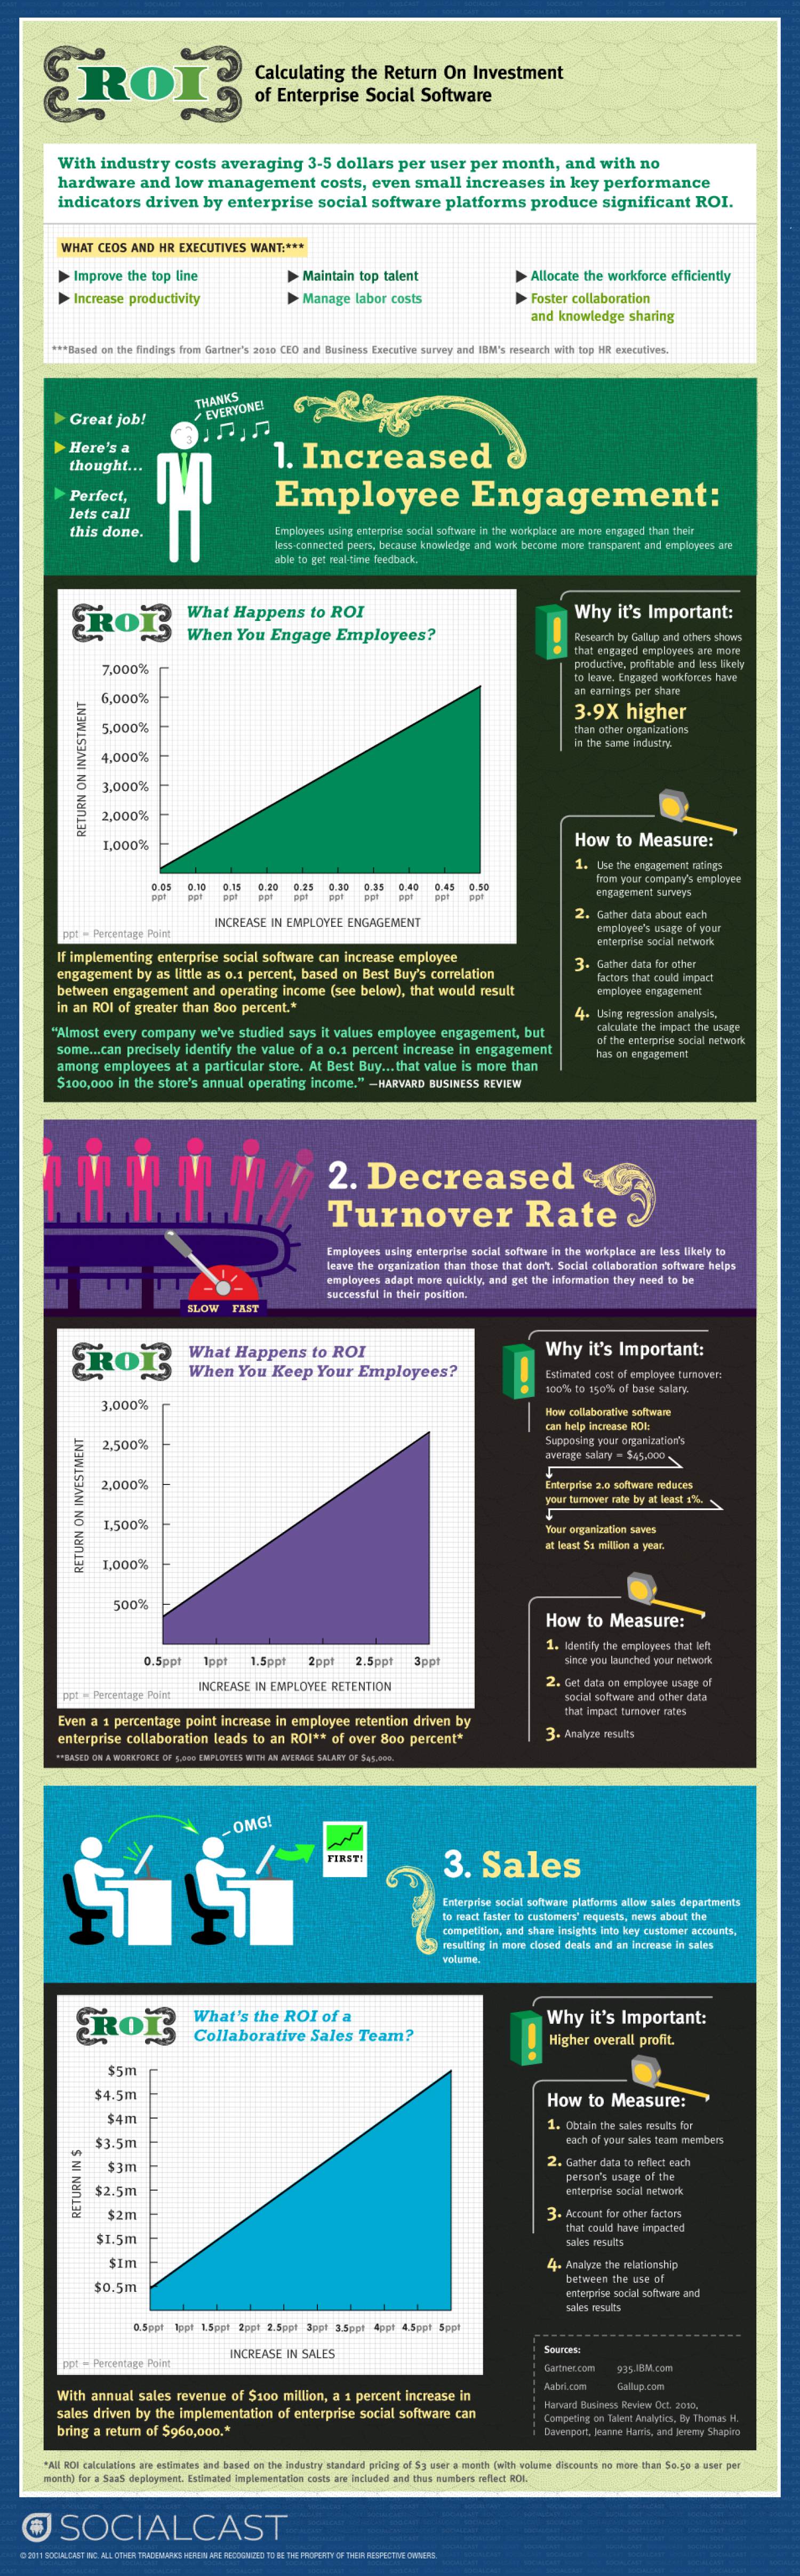 ROI: Calculating the Return on Investment of Enterprise Social Software Infographic